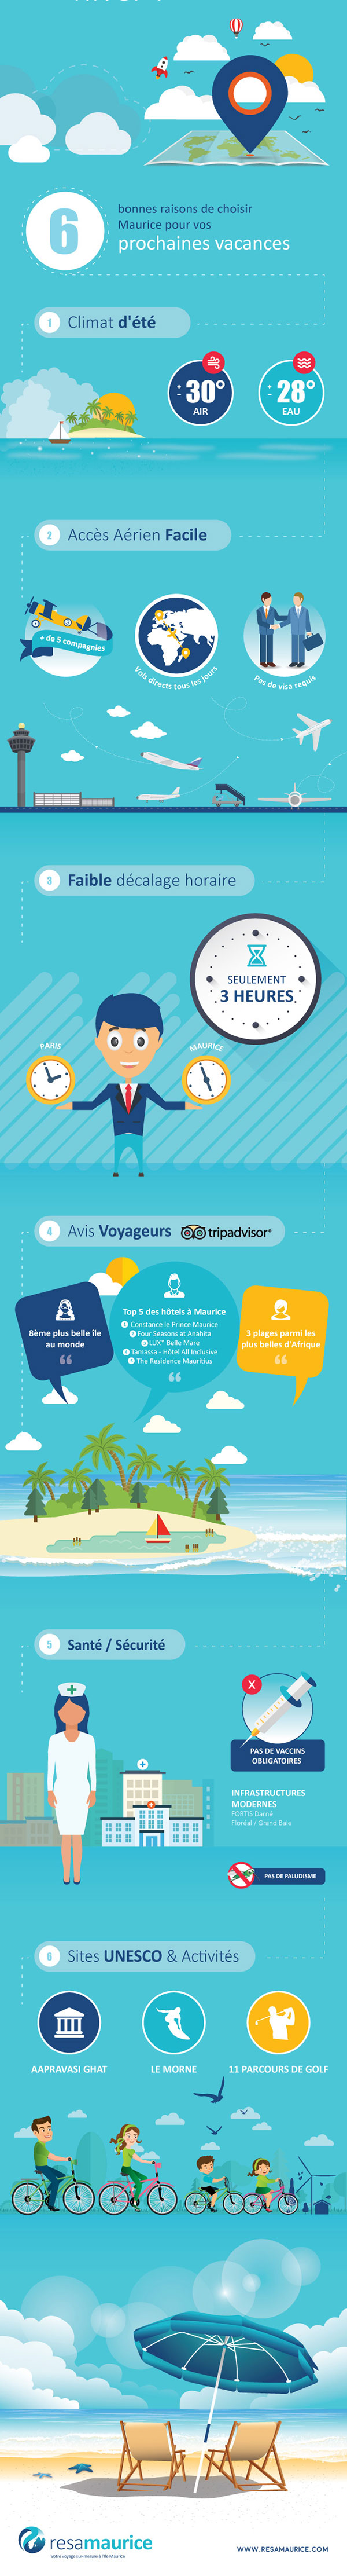 Infographie Maurice the place to be cet hiver